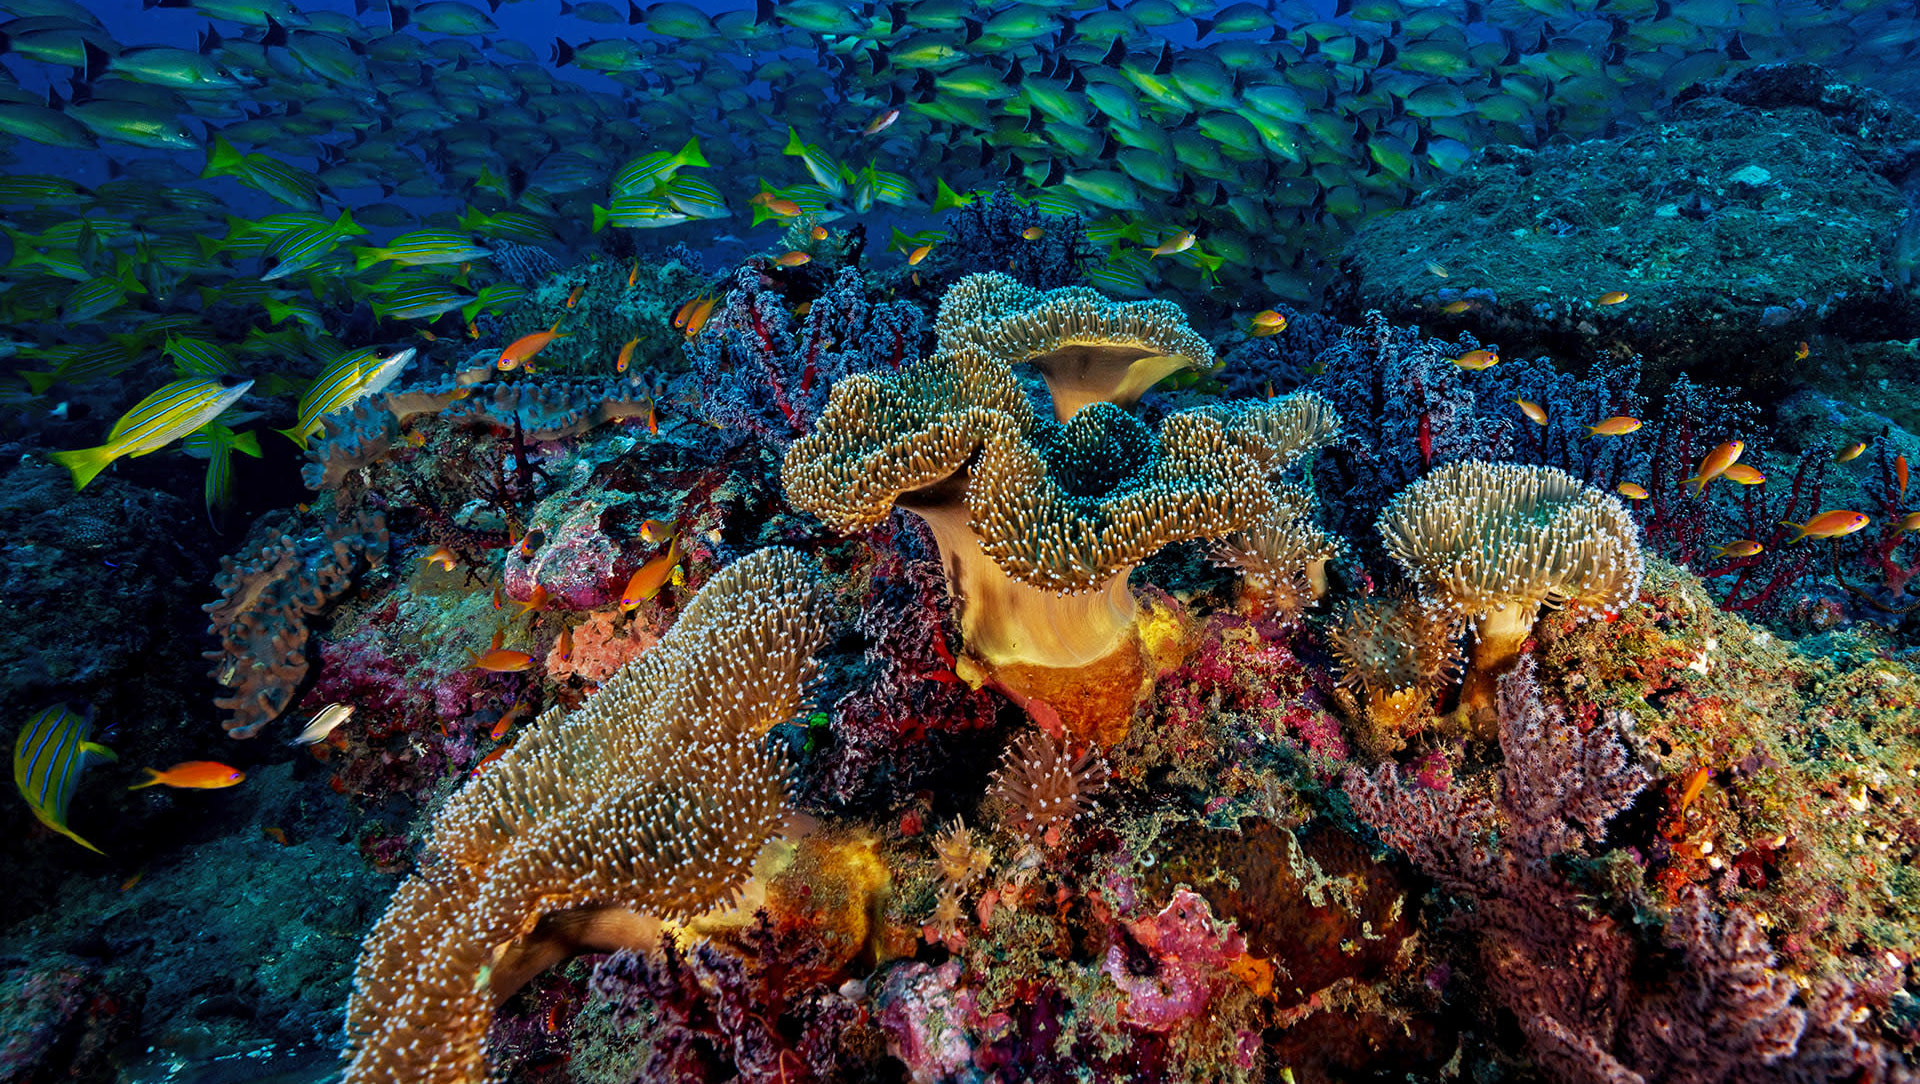 Coral Reefs of India: What Makes them Important Ecosystems